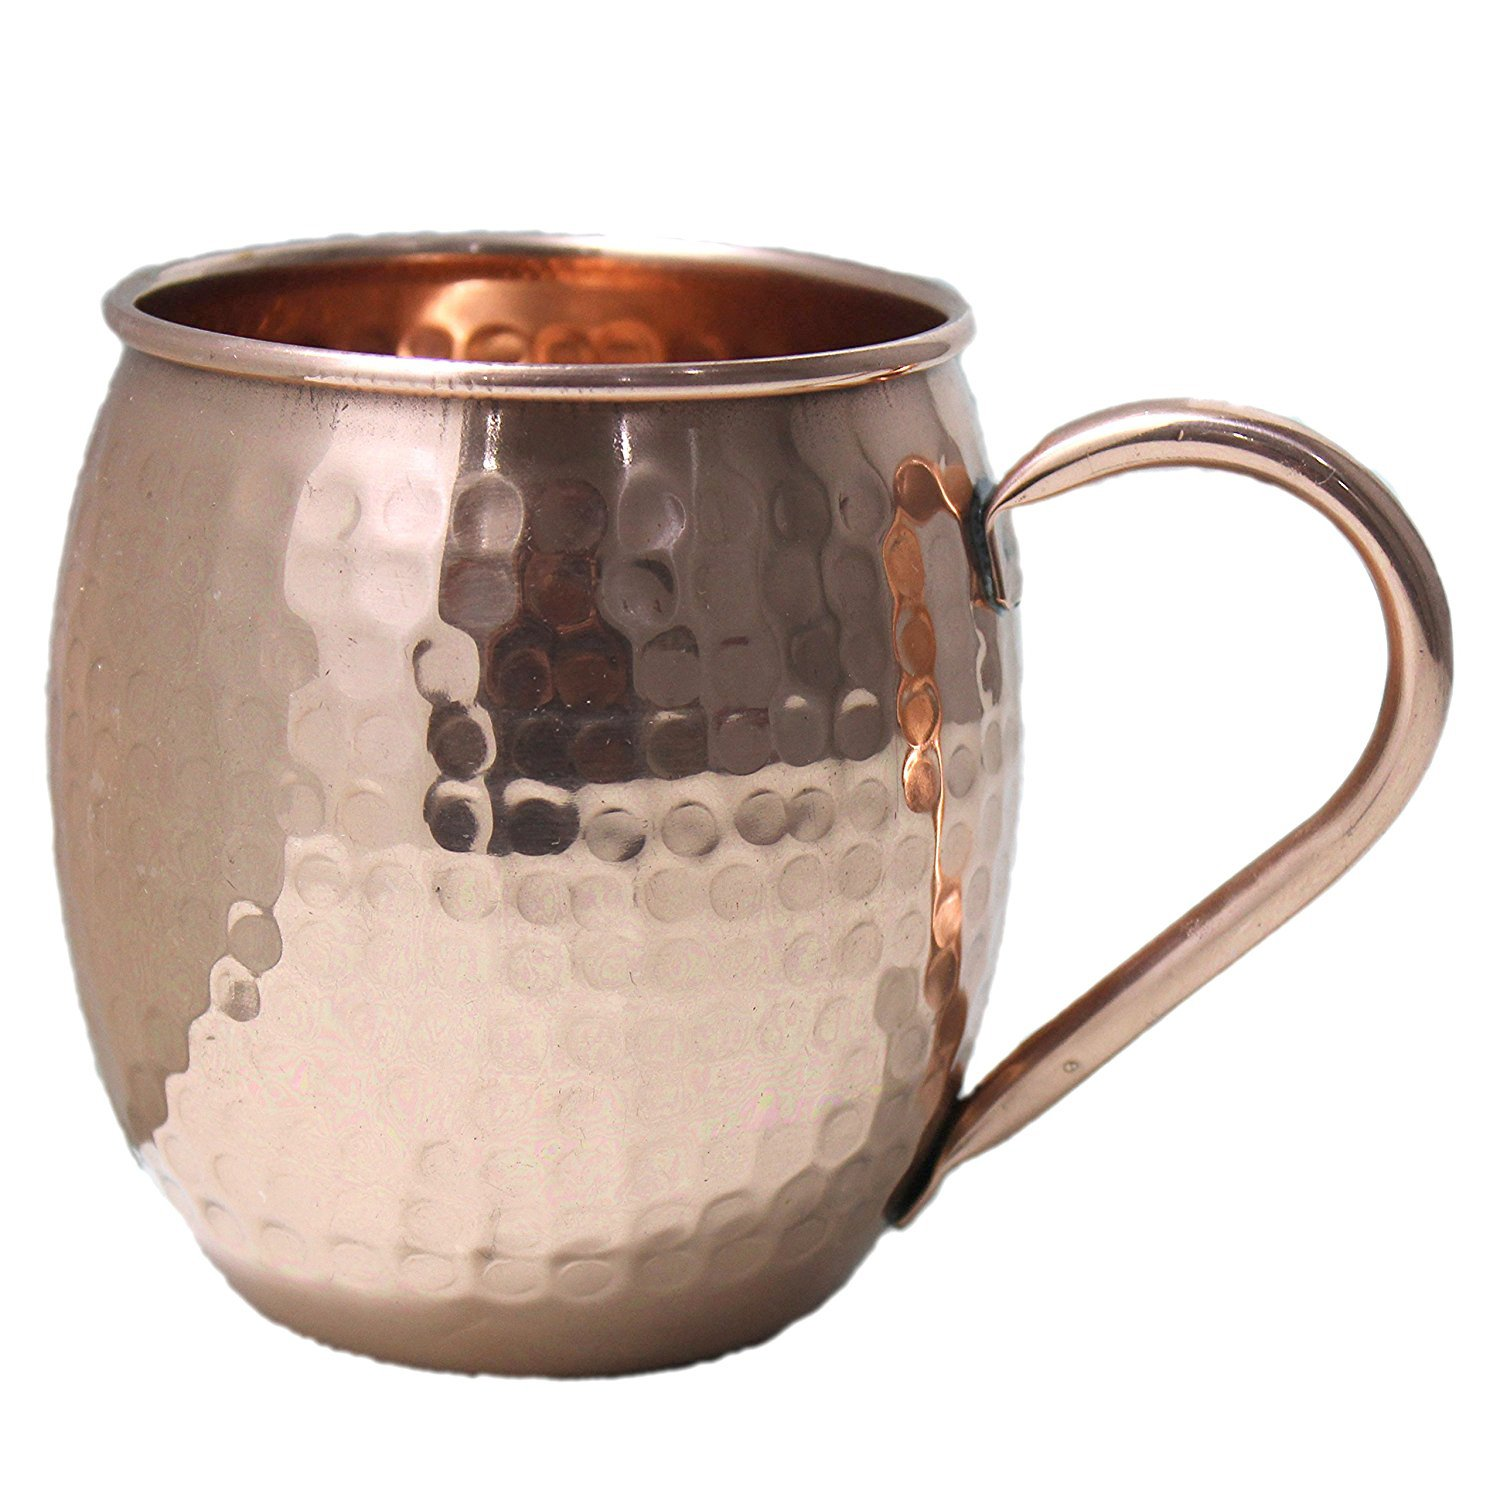 PARIJAT HANDICRAFT Handcrafted Moscow Mules Copper Mugs 100% Pure Copper Solid Moscow Mule Mug 24 Ounce Extra Large Size No Lining Hammered Finish with copper handle E8P-MT0-NXK